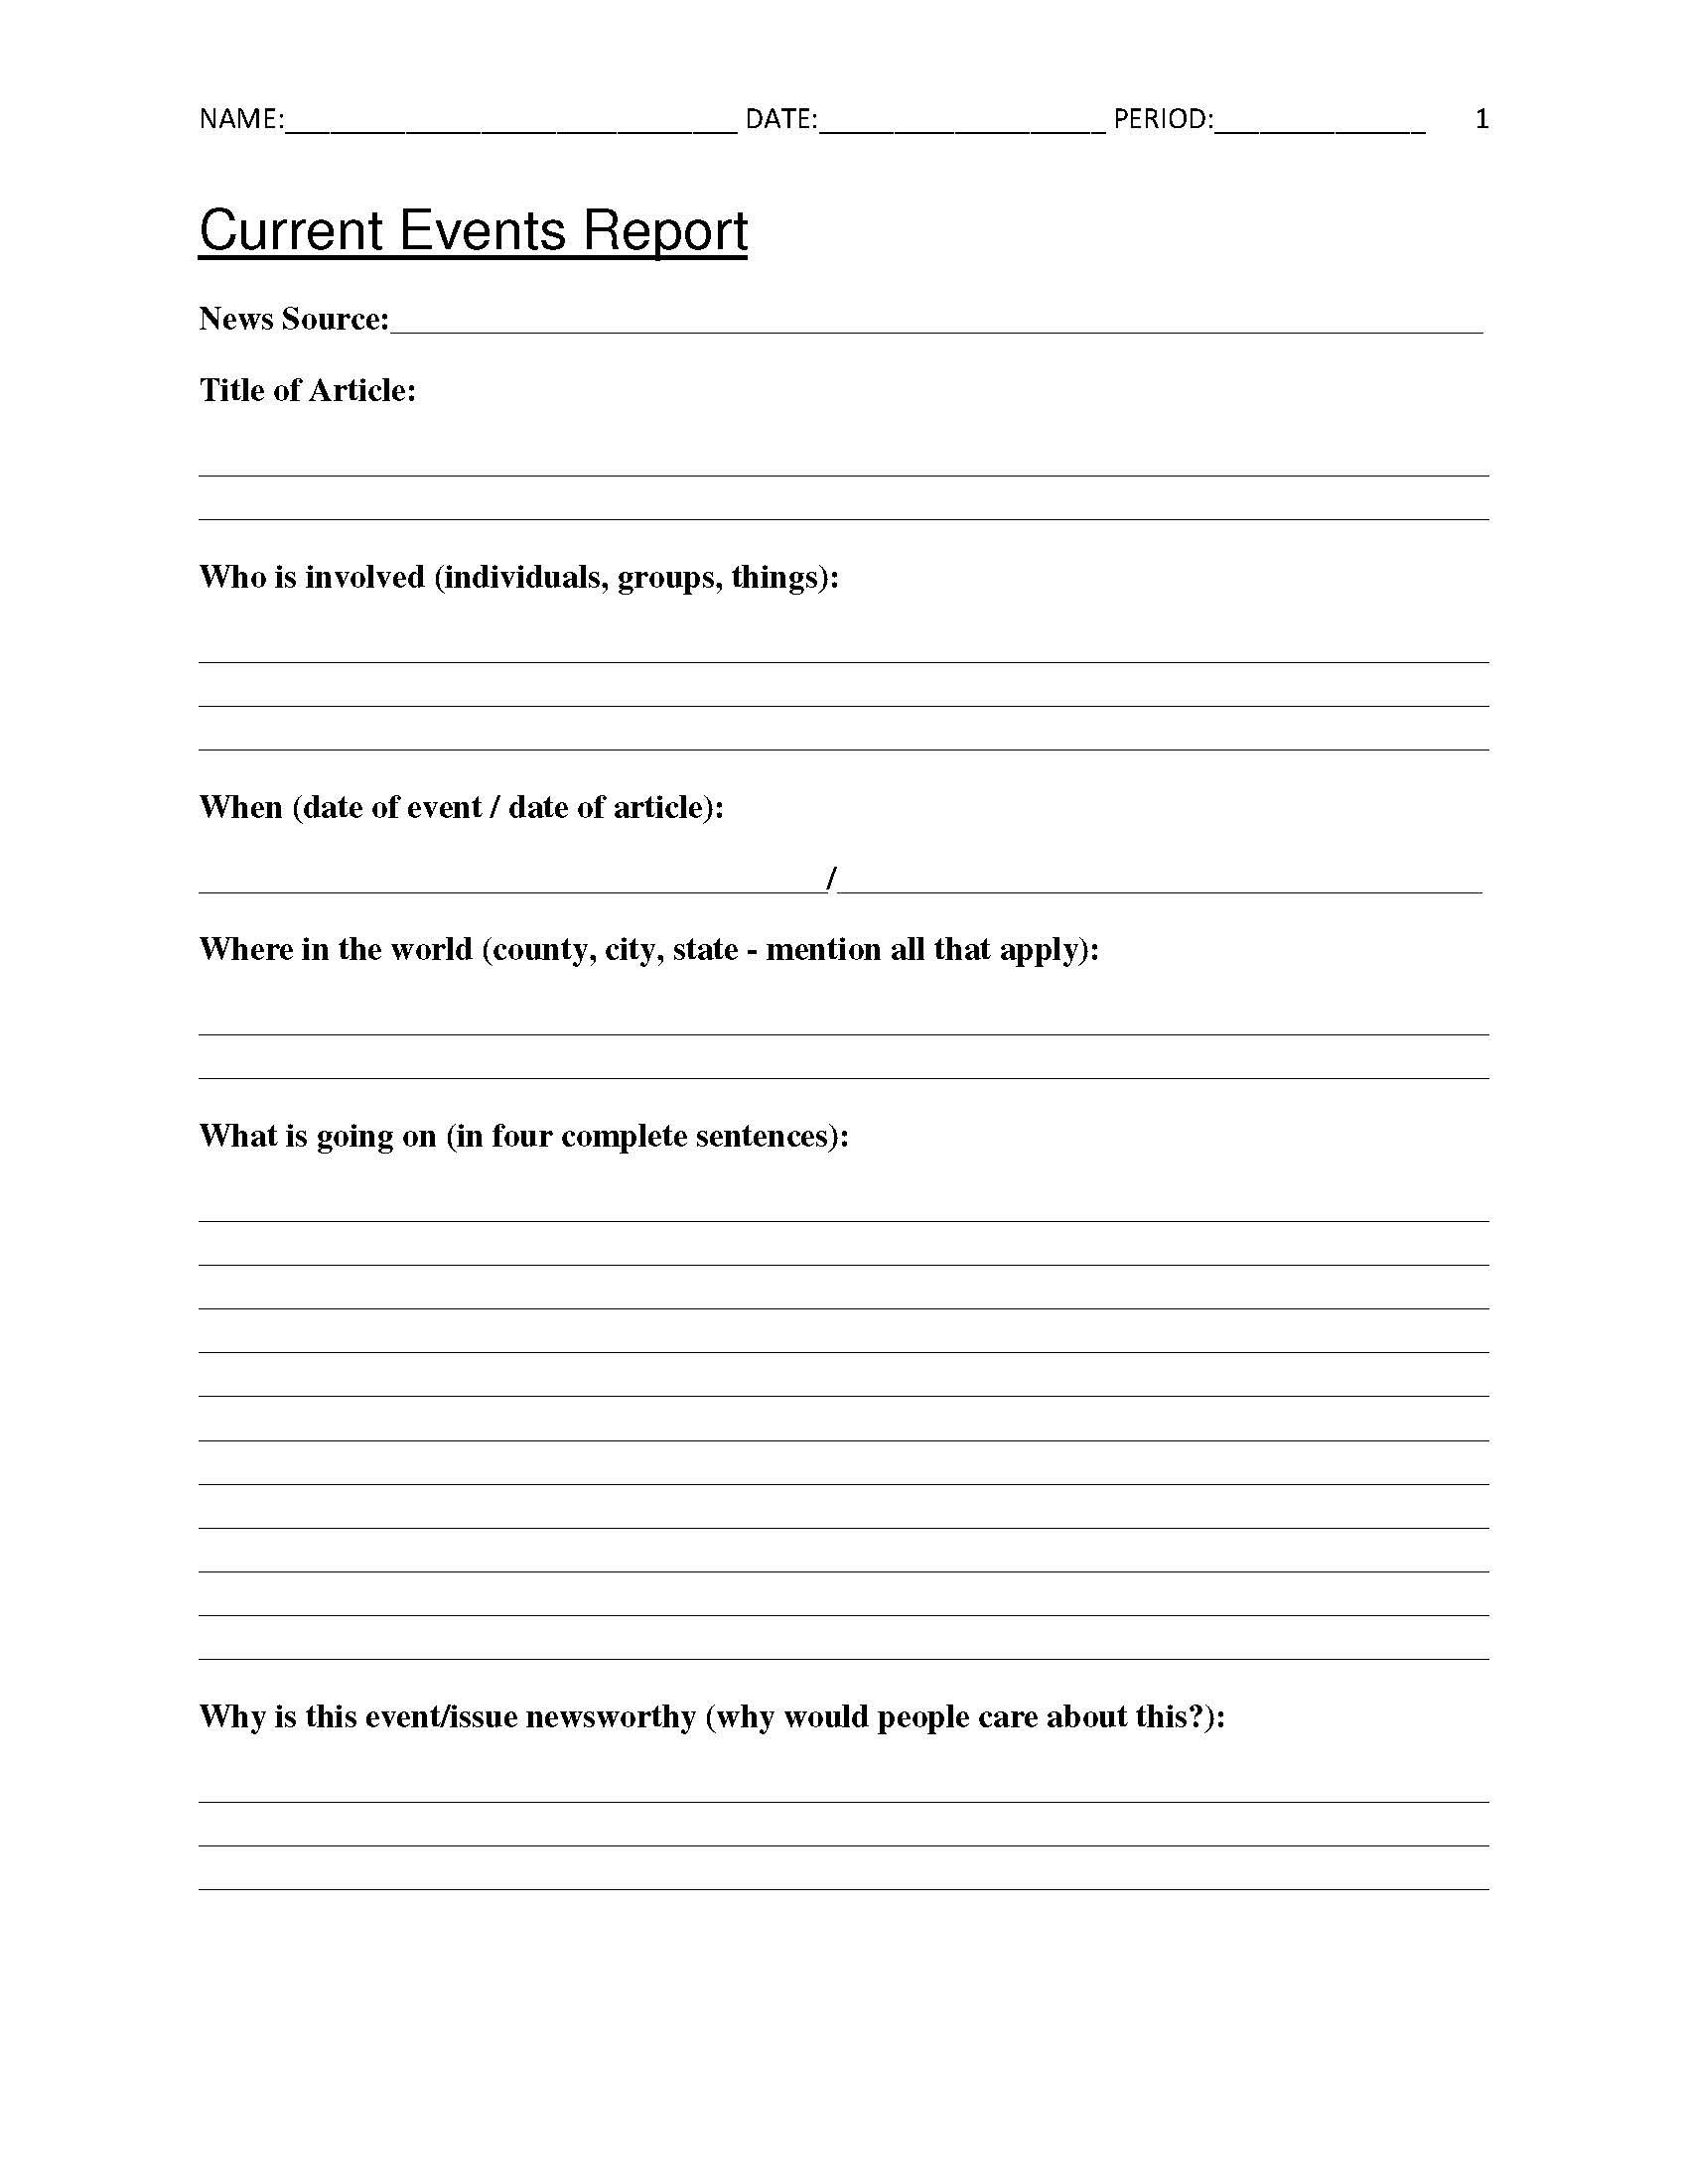 Free Current Events Report Worksheet for Classroom Teachers   Current  events worksheet [ 2200 x 1700 Pixel ]